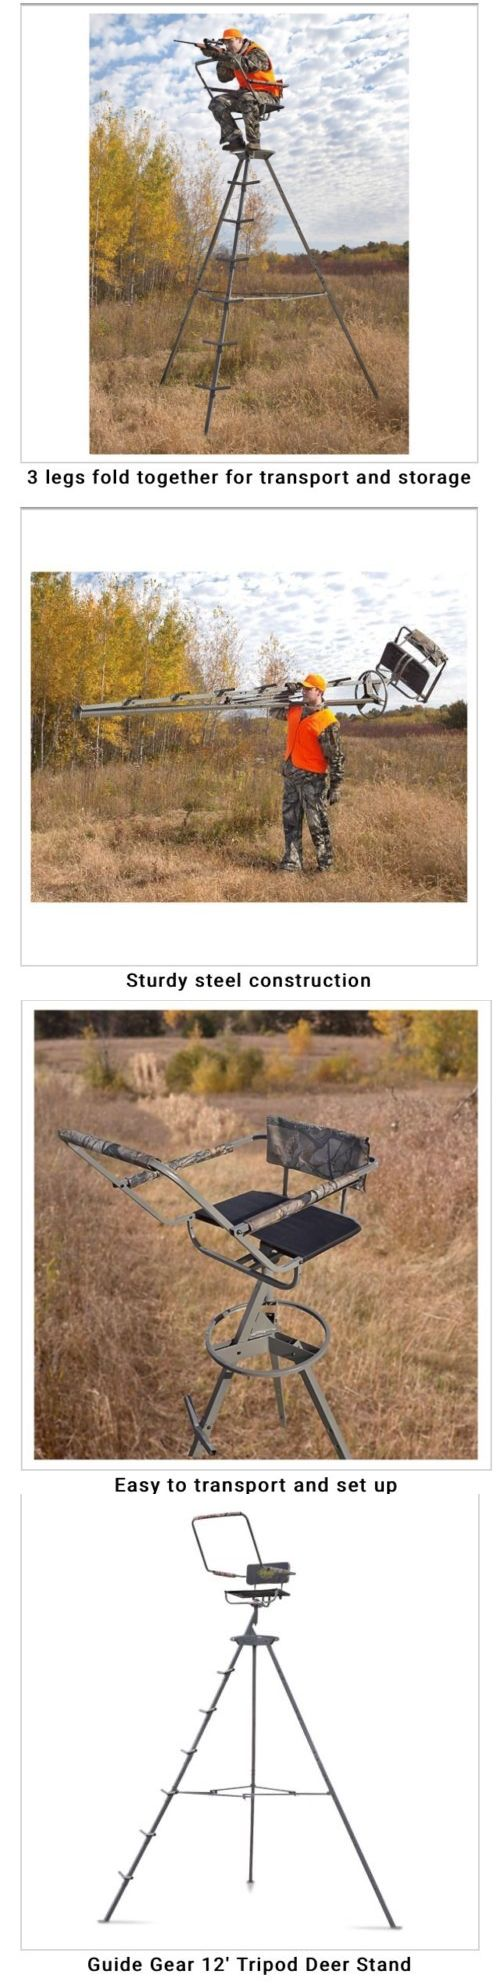 Tree Stands 52508: Guide Gear 12 Tripod Deer Stand Do Not Ship Out Side Us Are Alaska And Hawaii -> BUY IT NOW ONLY: $125.99 on eBay!